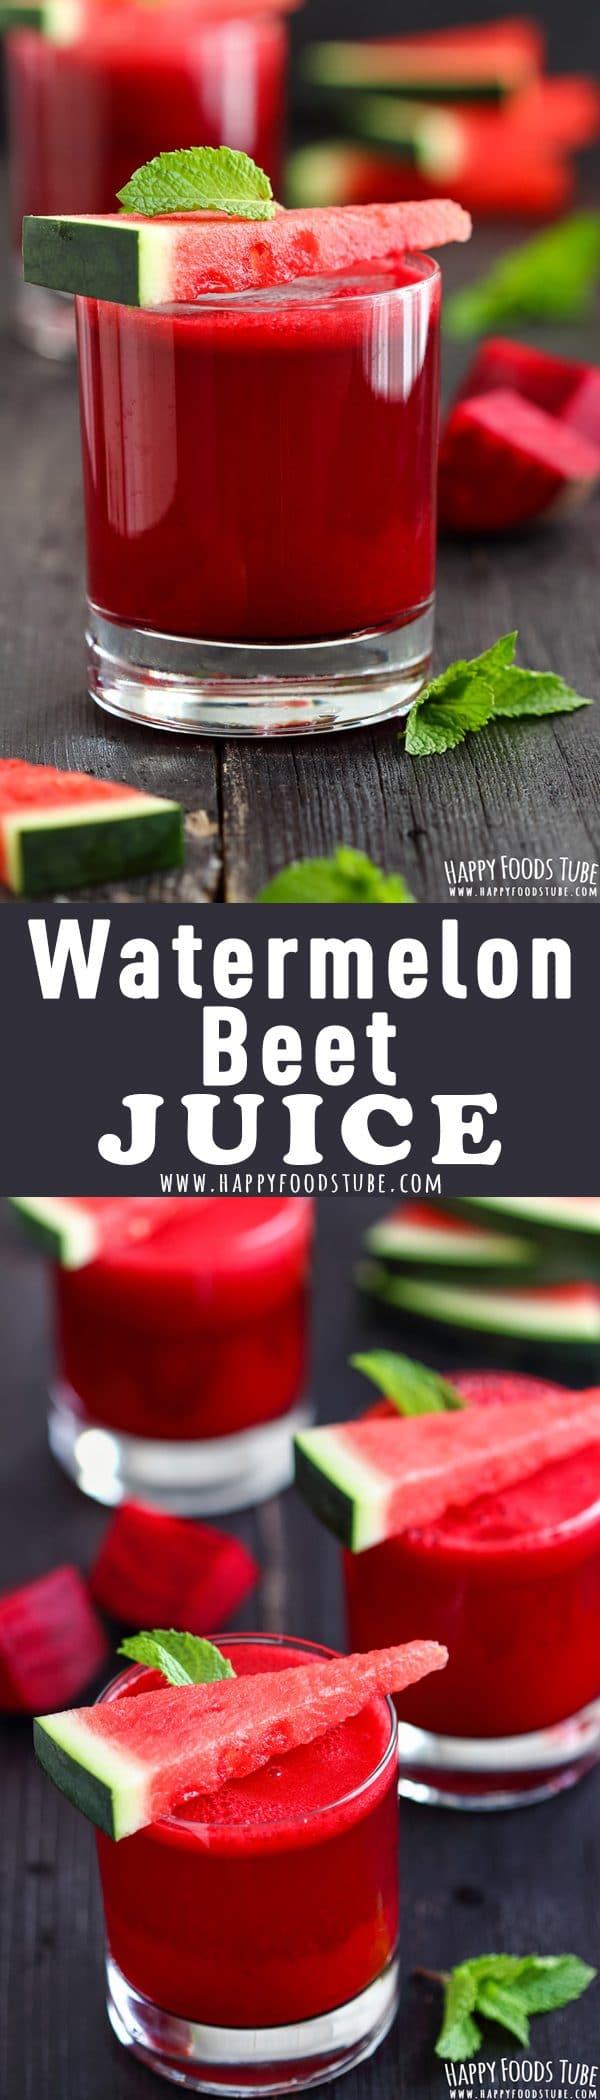 Watermelon Beet Juice Recipe Picture